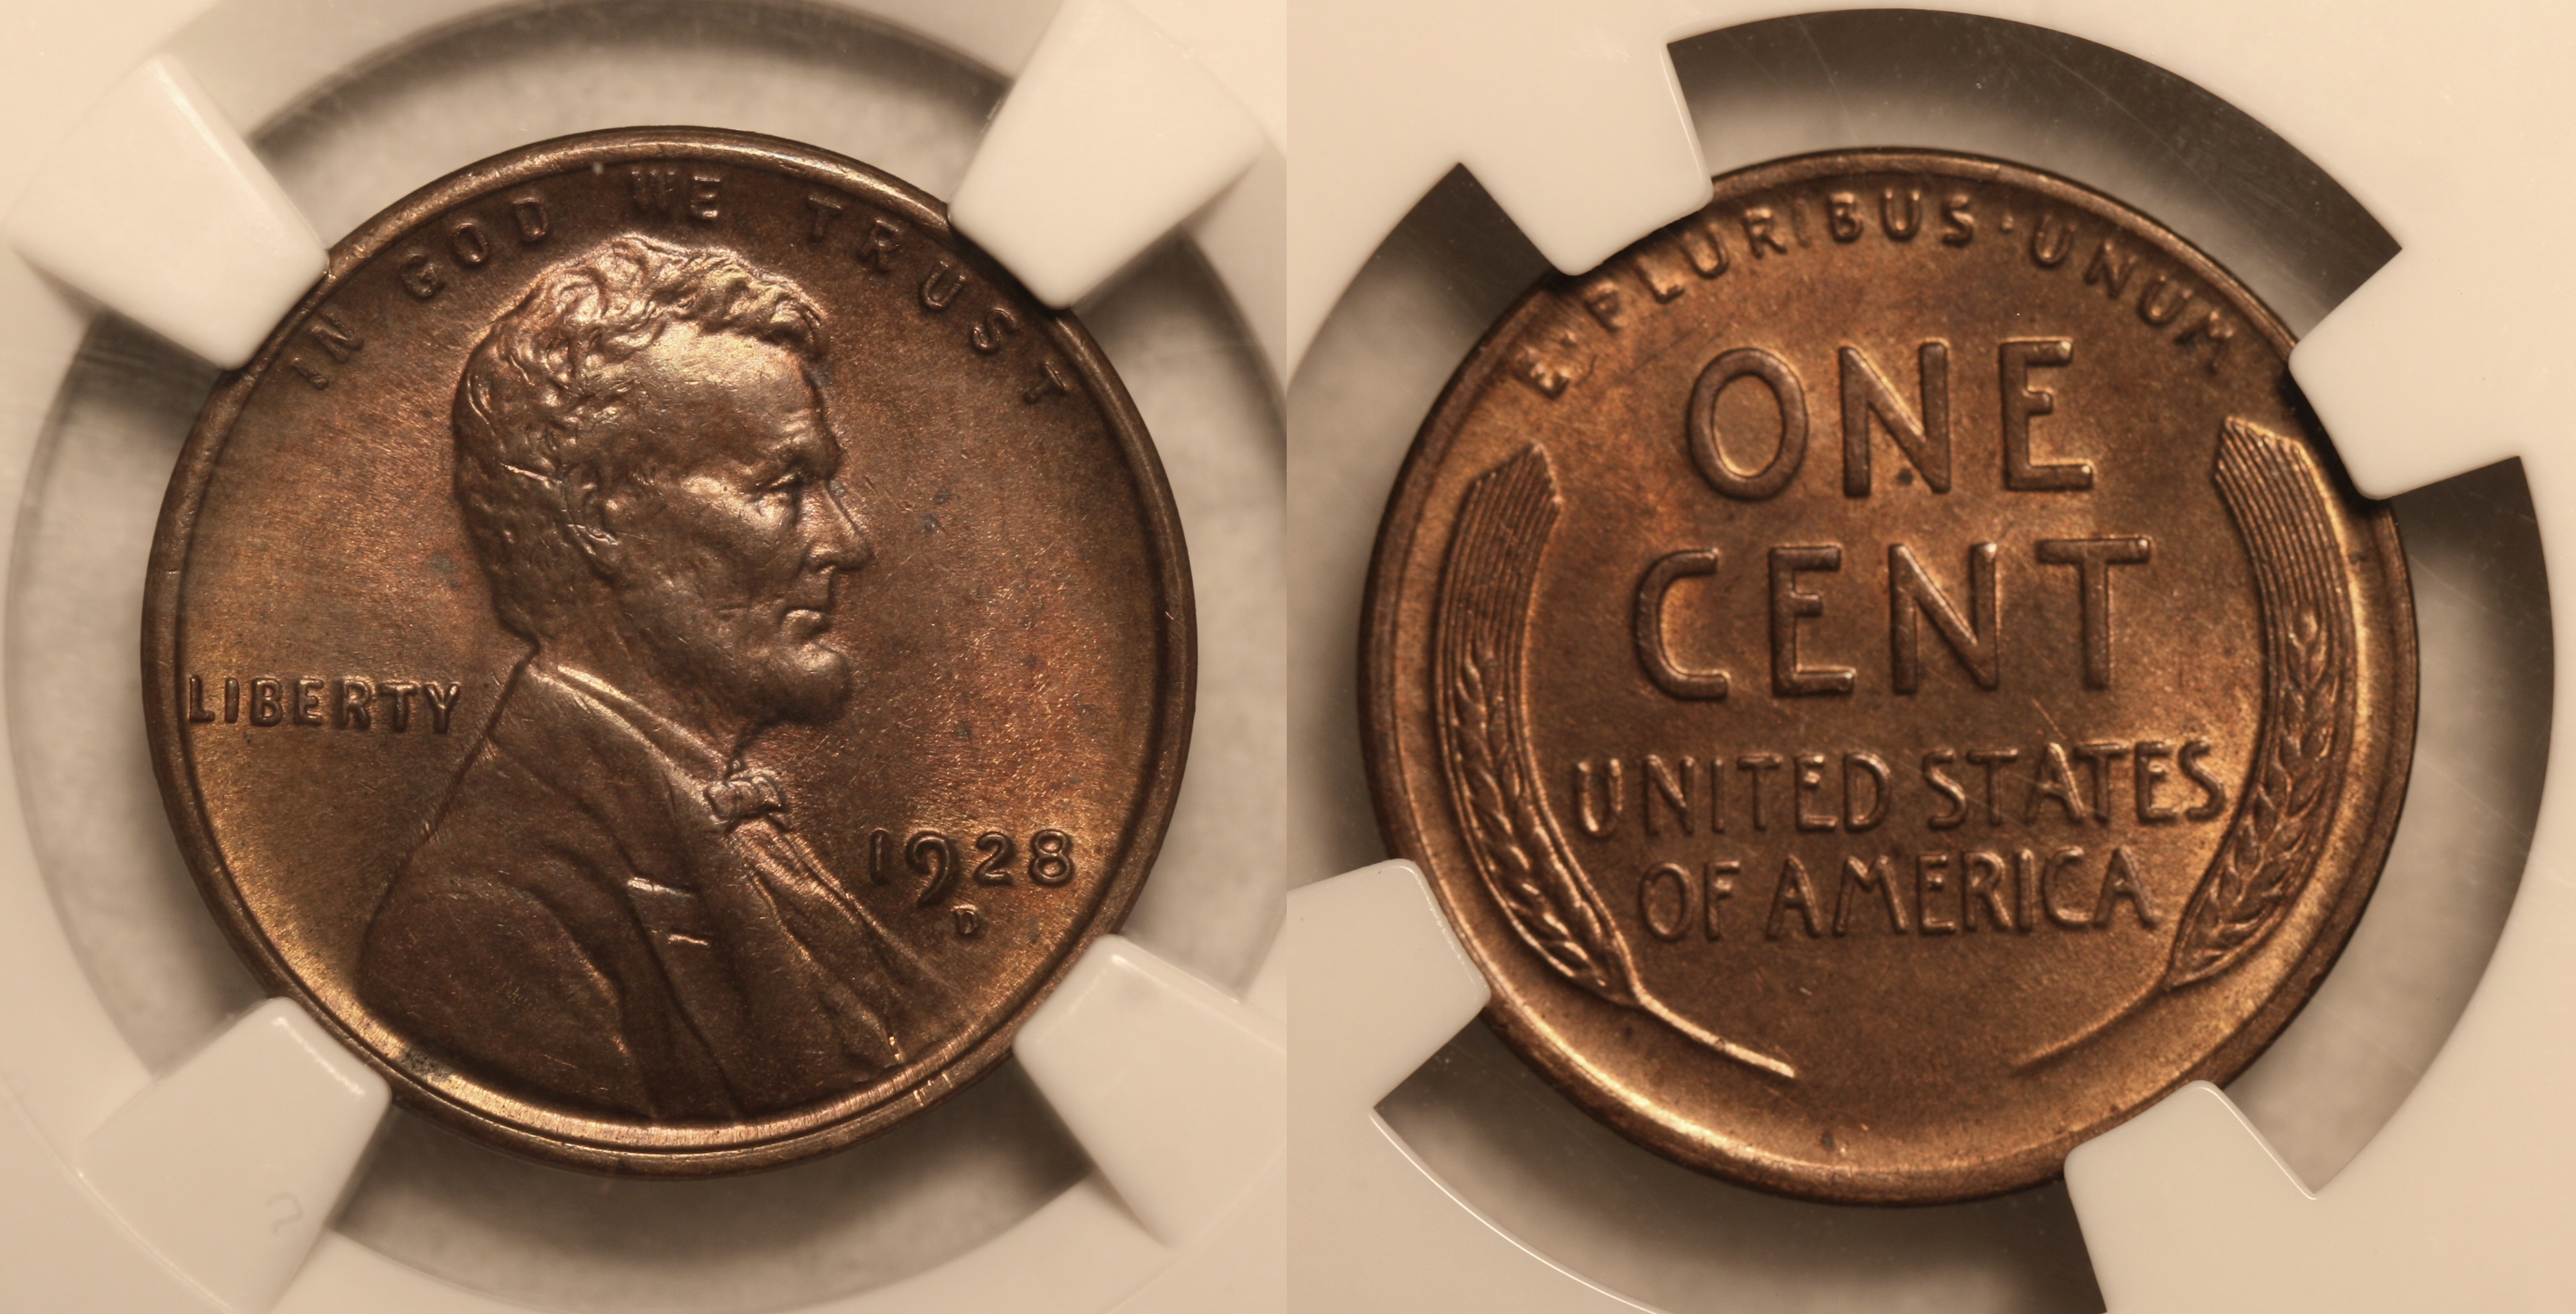 1928-D Lincoln Cent NGC MS-63 RB camera